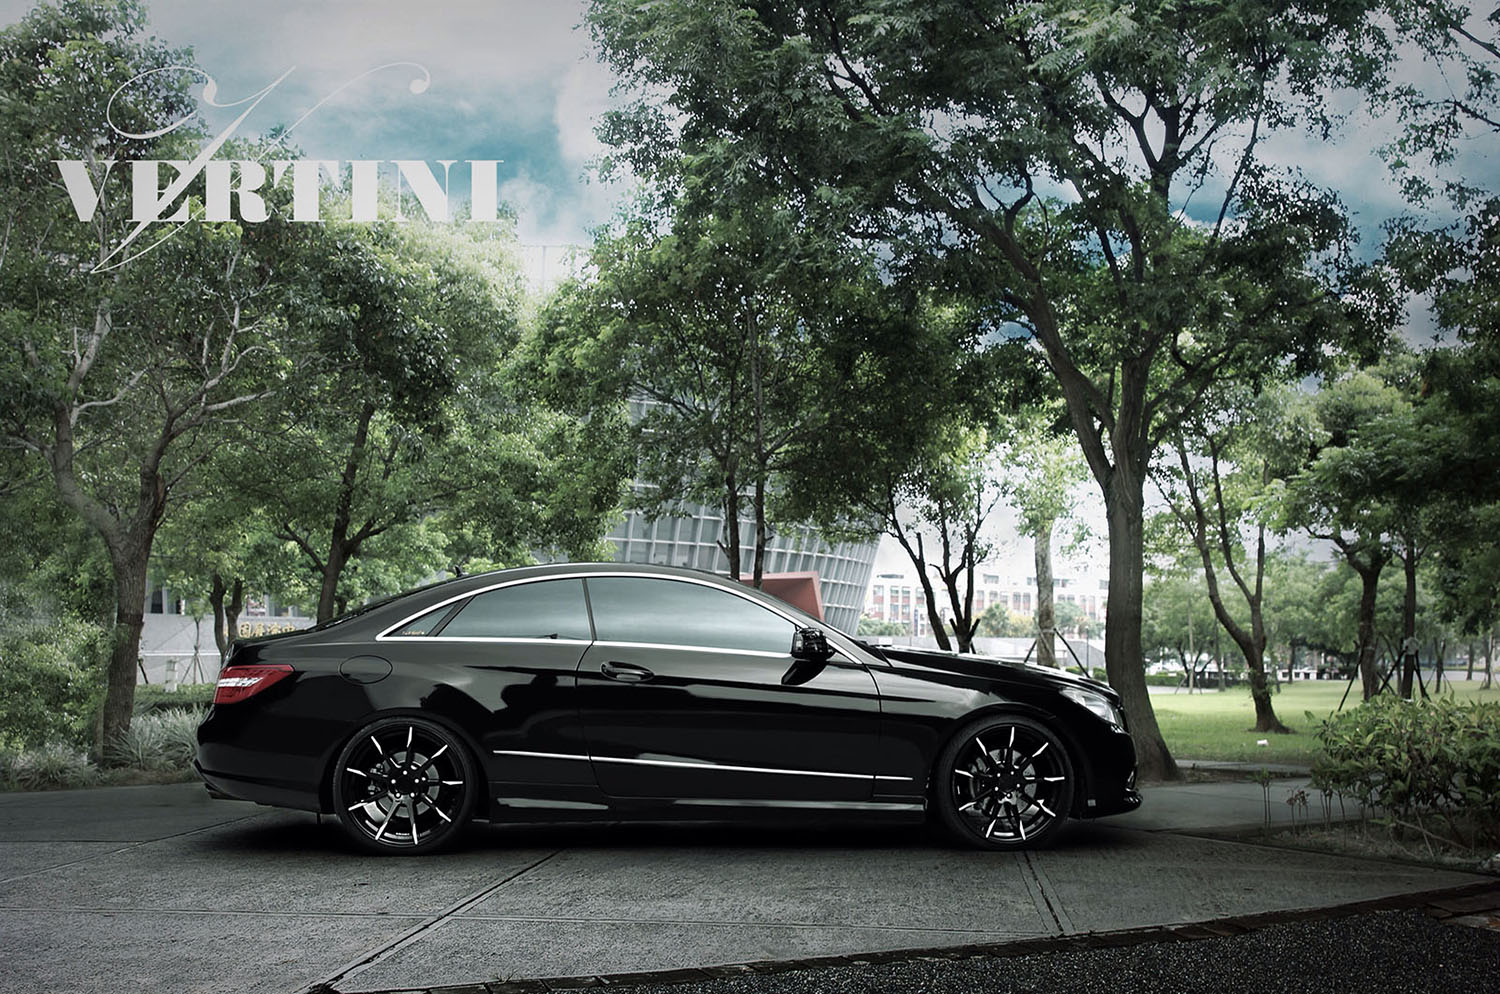 Vertini Flying Black 20' on Mercedes Benz E550 Coupe